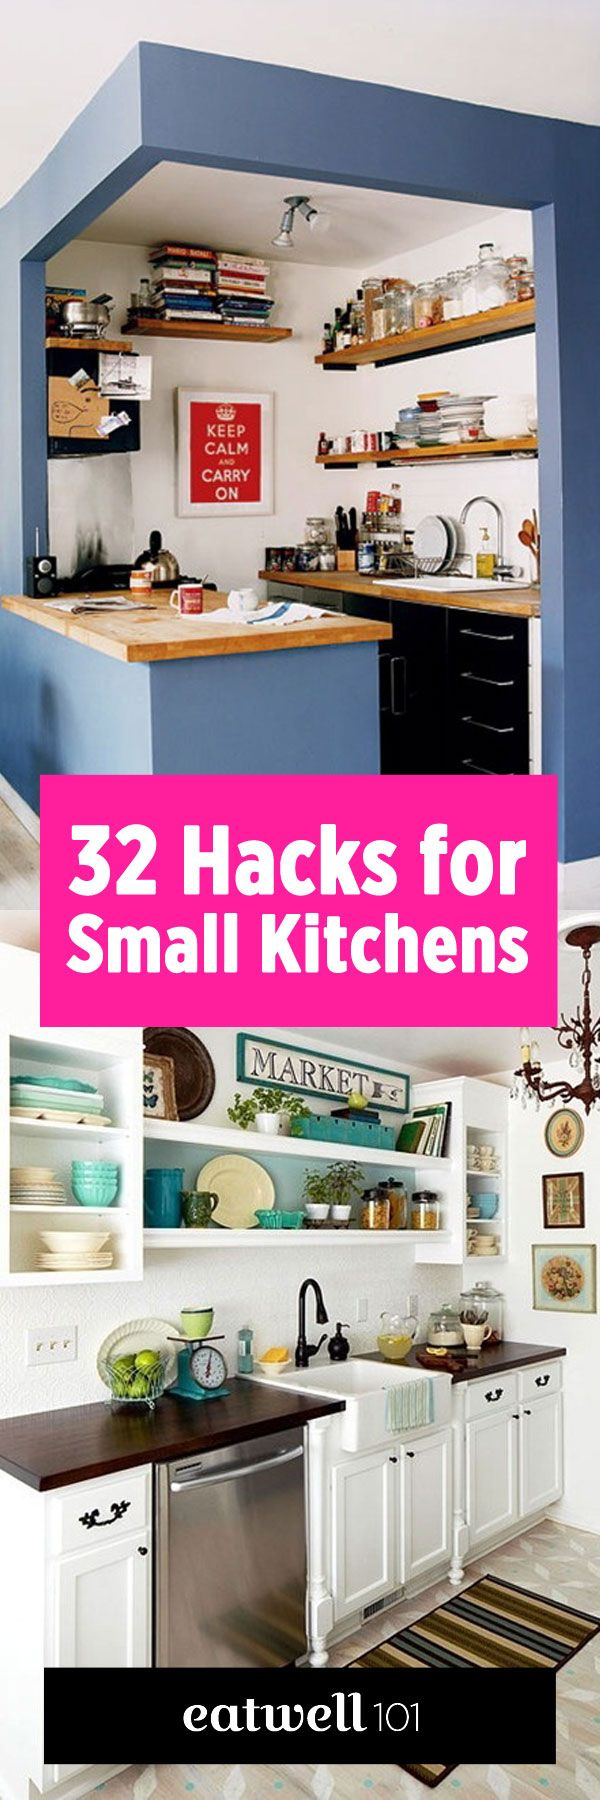 Best 25 small kitchen diy ideas on pinterest small kitchen organization small kitchen ideas - Inspired diy ideas small kitchen ...